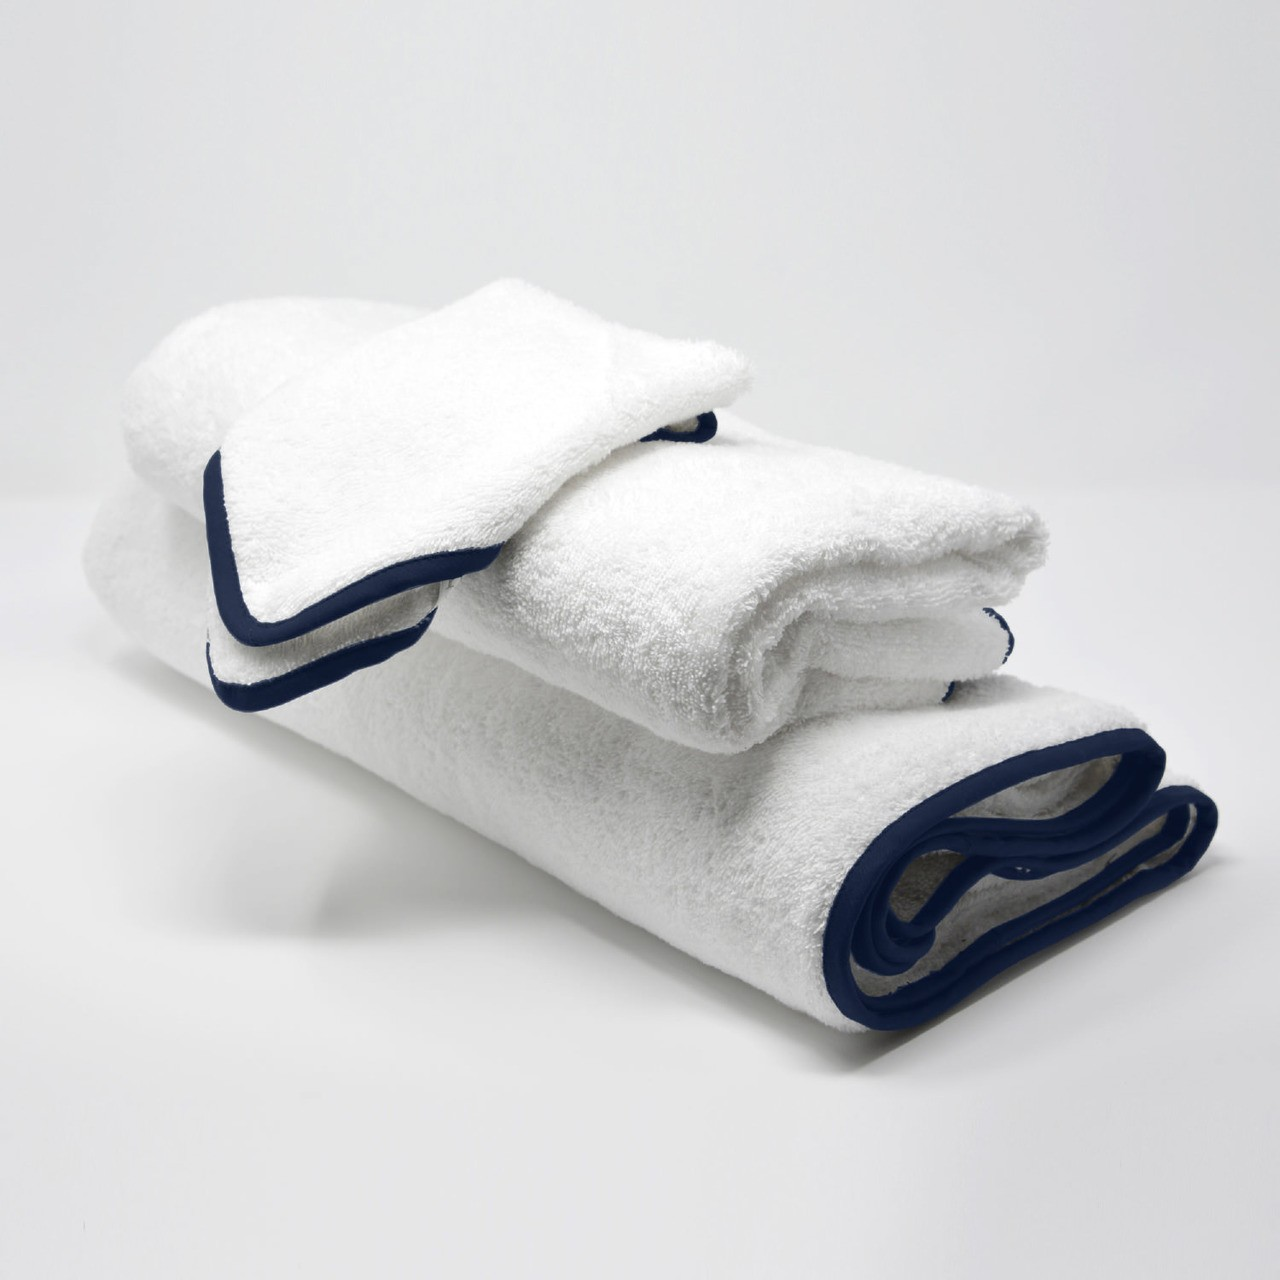 BATH TOWELS SET NAVY'S BLUE